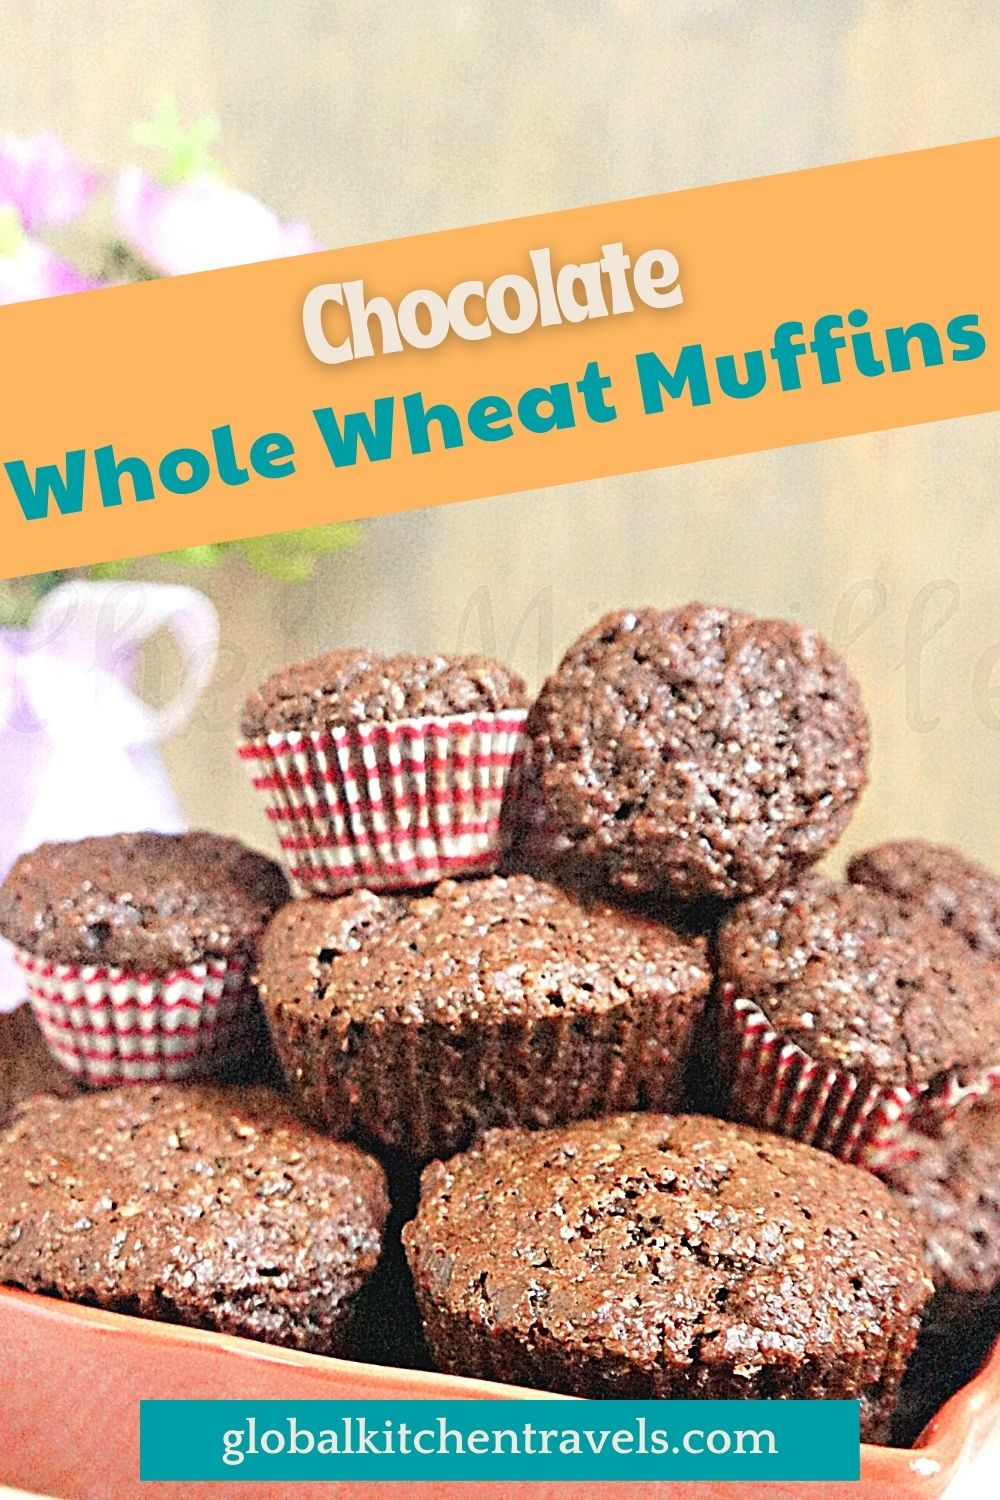 bowl of chocolate muffins with text